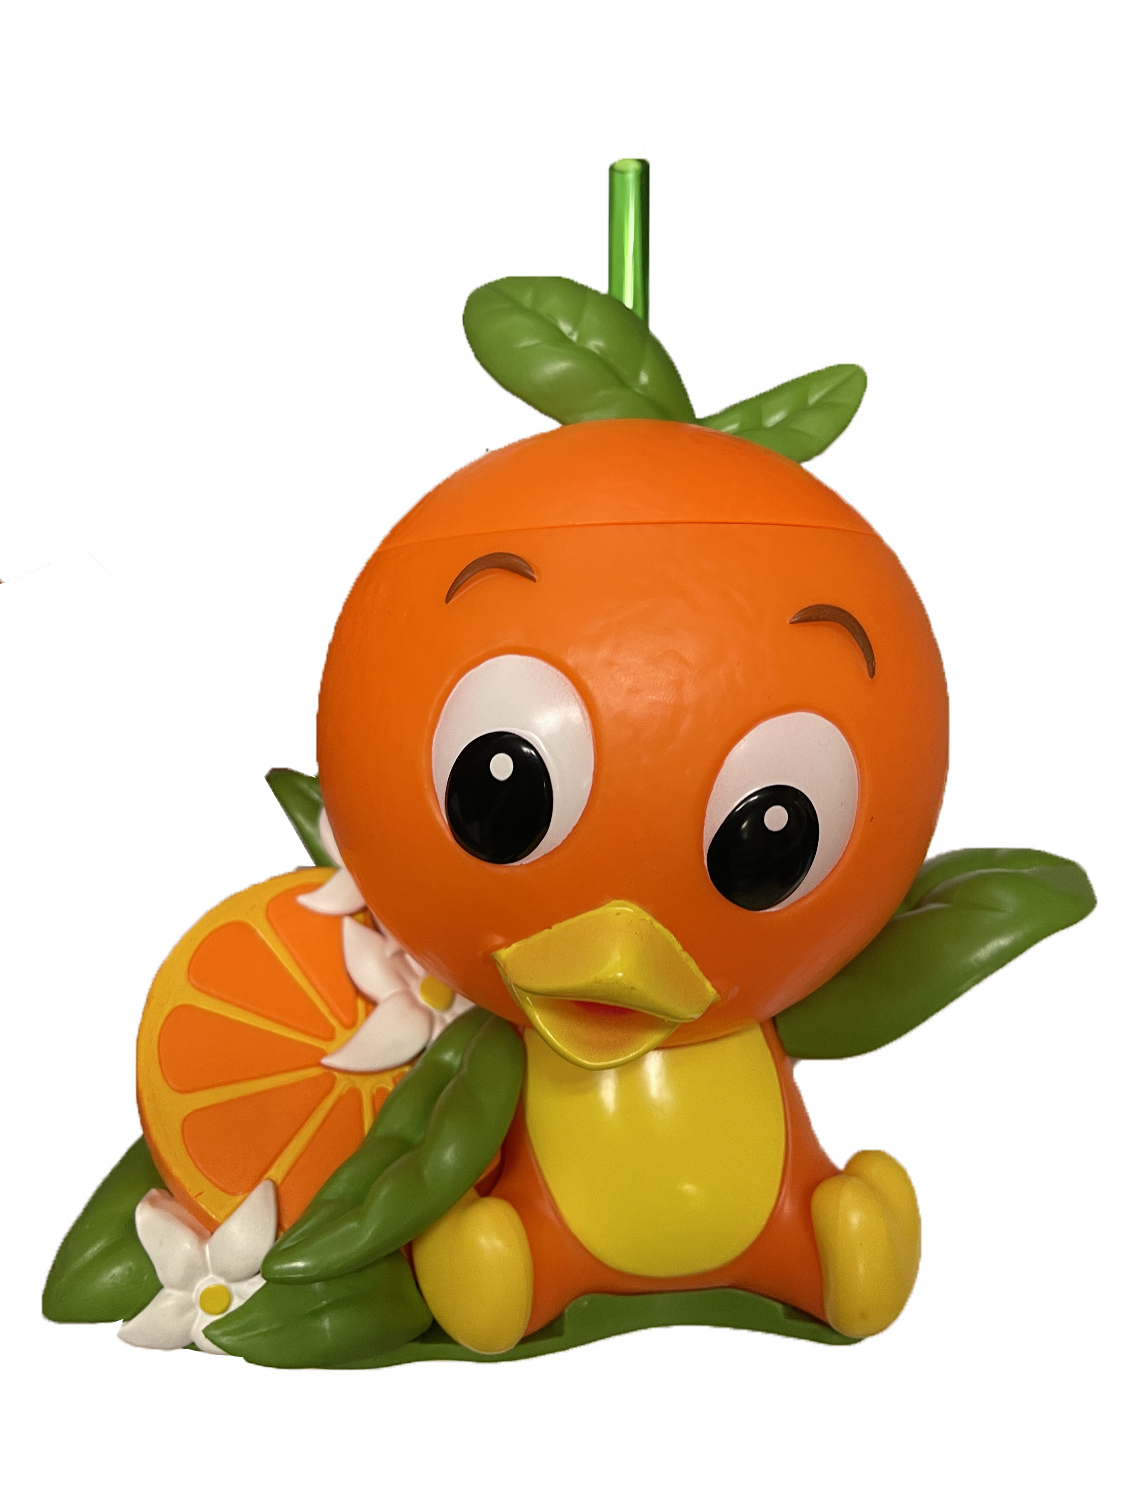 Disney Sipper Cup with Straw - Orange Bird with Orange Slice